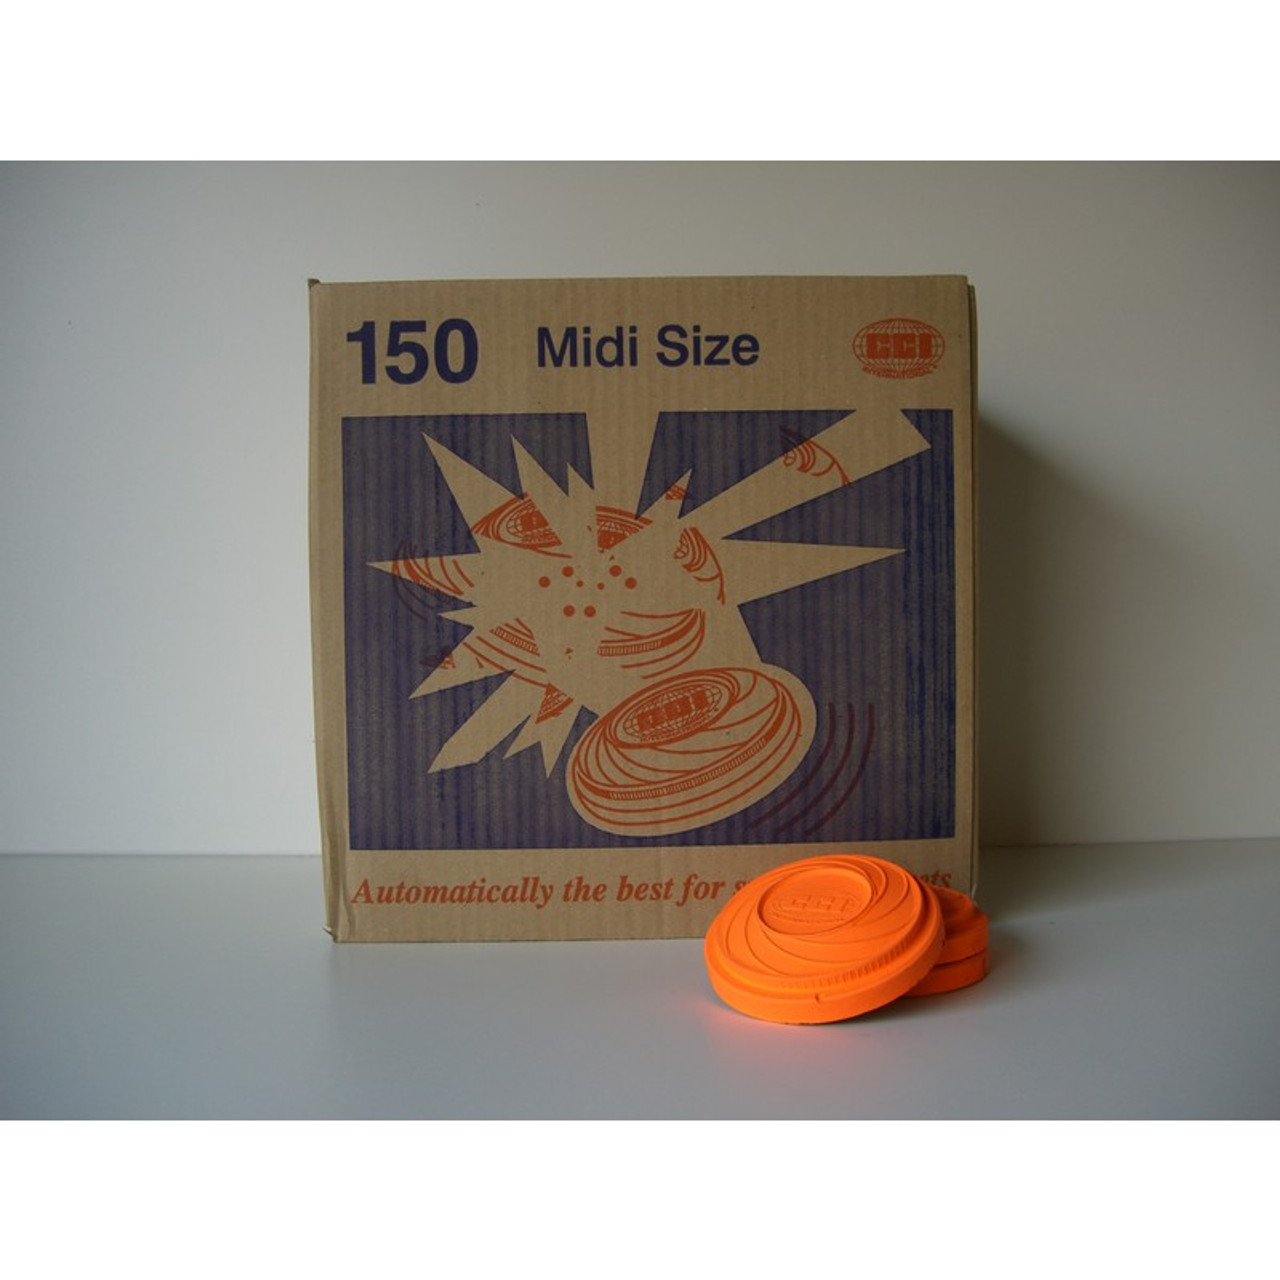 CCI Midi Blaze Clays, buy at cheap rates from bradford stalker